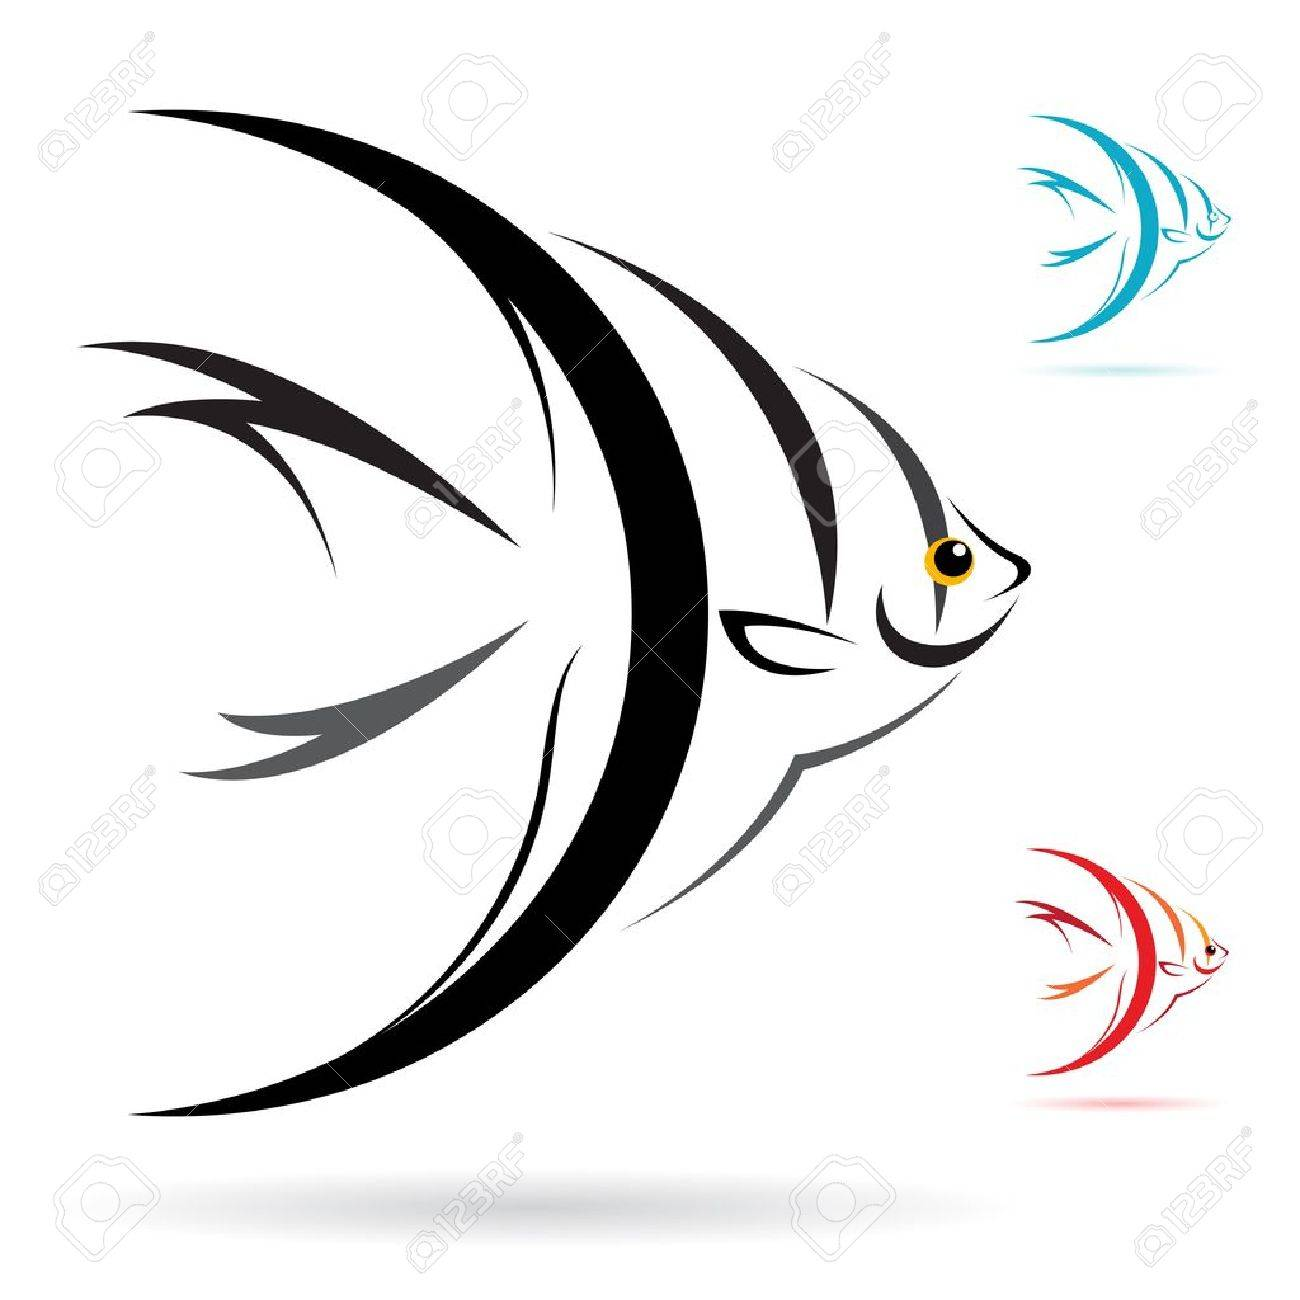 image of an angel fish on white background royalty free cliparts